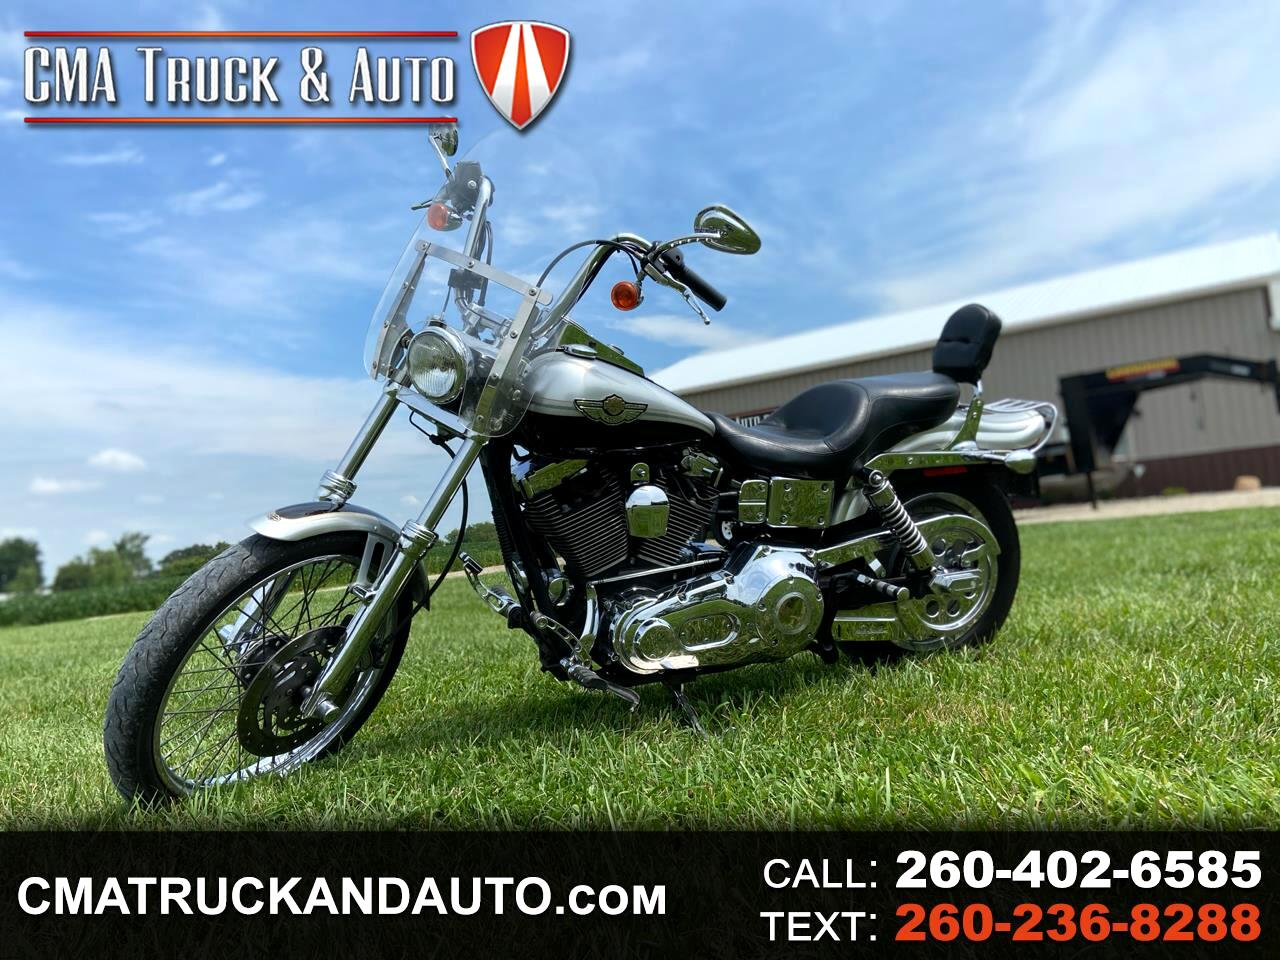 Used 2003 Harley Davidson Dyna Wide Glide For Sale In Berne In 46711 Cma Truck And Auto